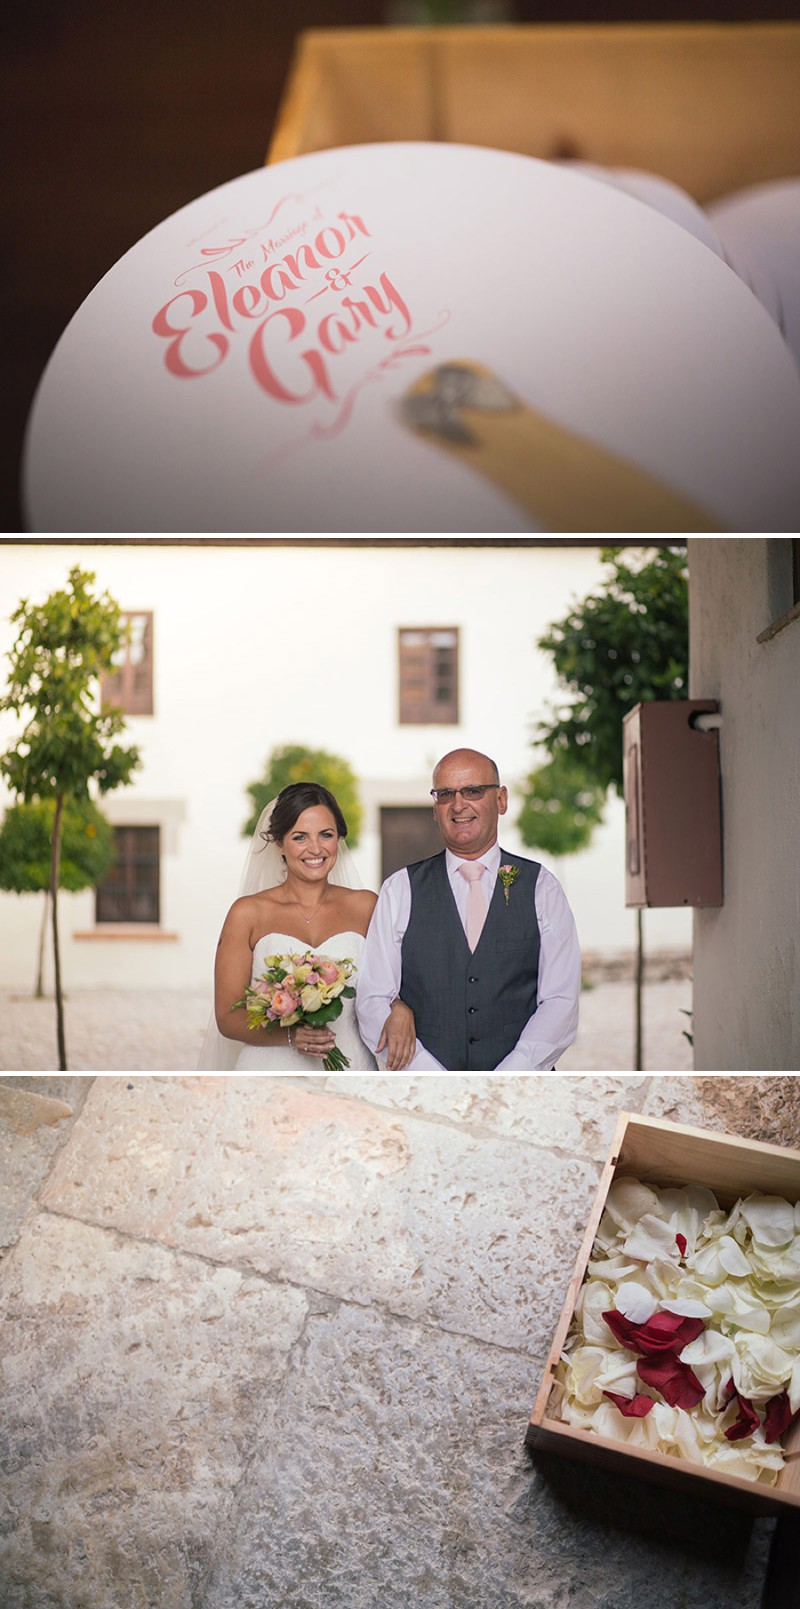 A Spanish Destination Wedding At Cortijo del Marques In Granada With A Emma Victoria Payne Wedding Dress Photographed By Joseph Hall Photography._0004